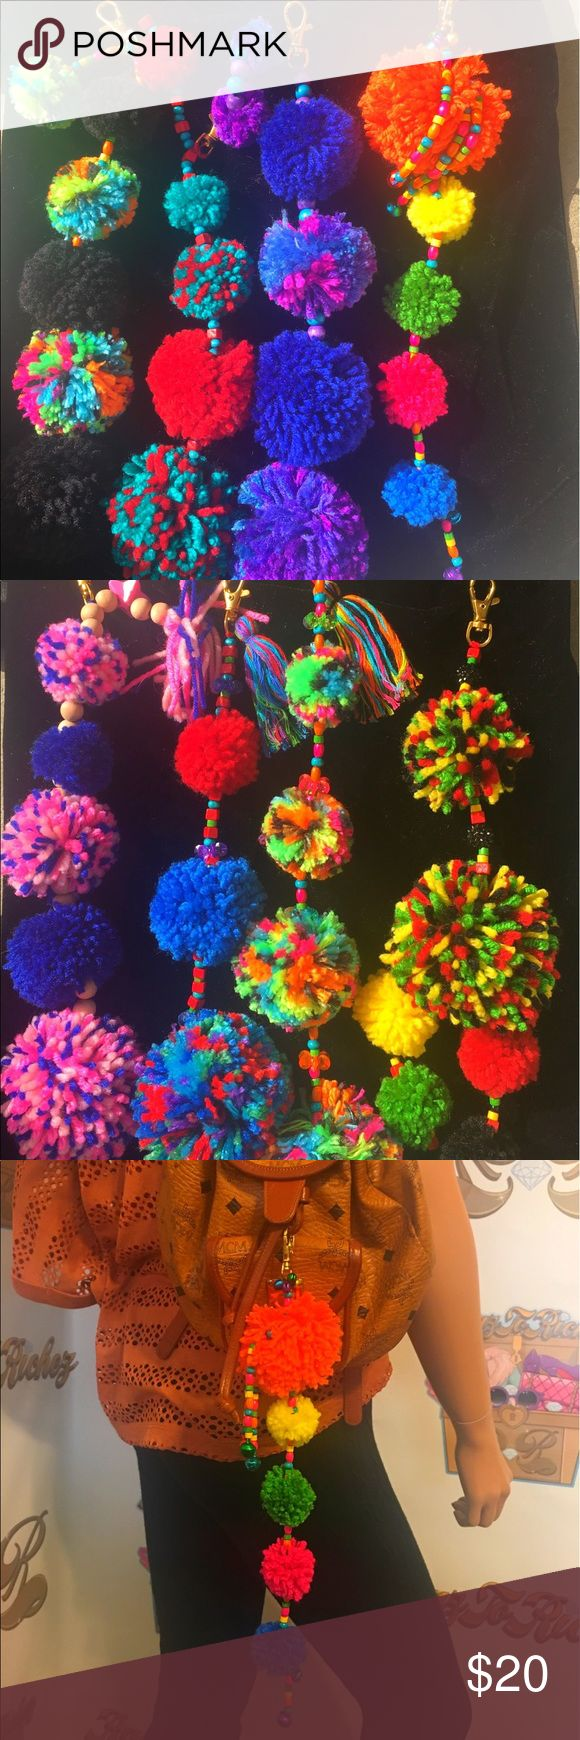 Pom Pom handmade Keychains Up for sale are these handmade Pom Pom keychains that are a great statement piece to your purse or keys ( mcm bag not included)  Accessories Key & Card Holders